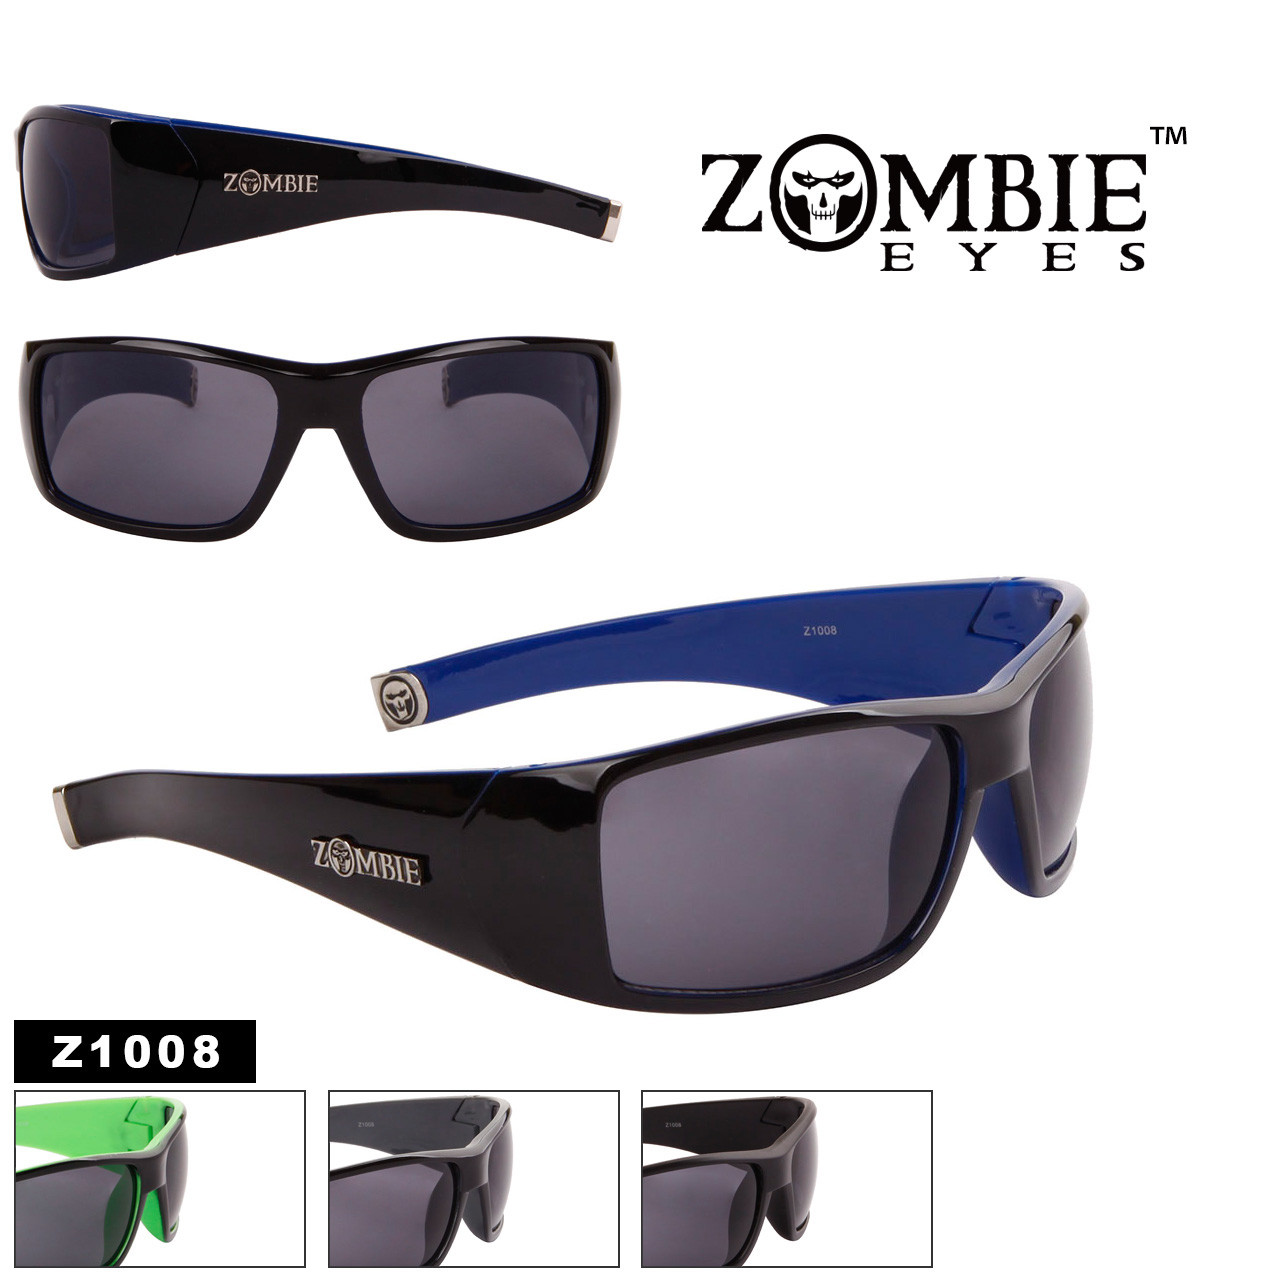 Zombie Eyes™ Men's Designer Sunglasses - Style #Z1008